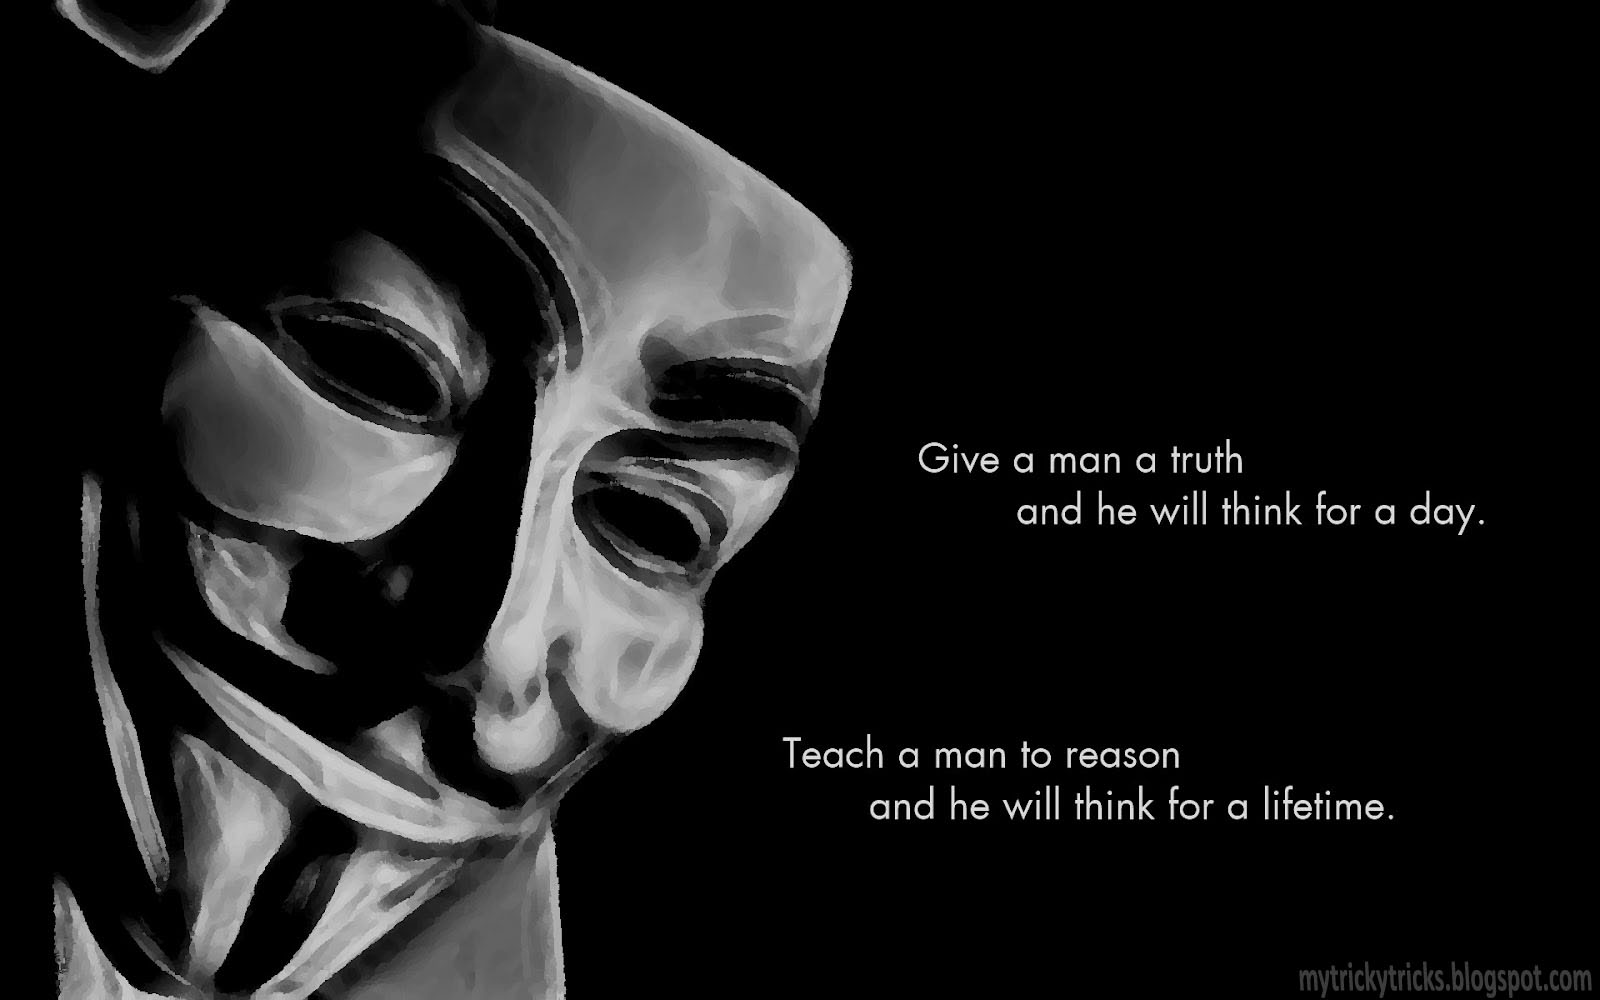 Trickytricks anonymous wallpapers on trickytricks - Anonymous wallpaper full hd ...